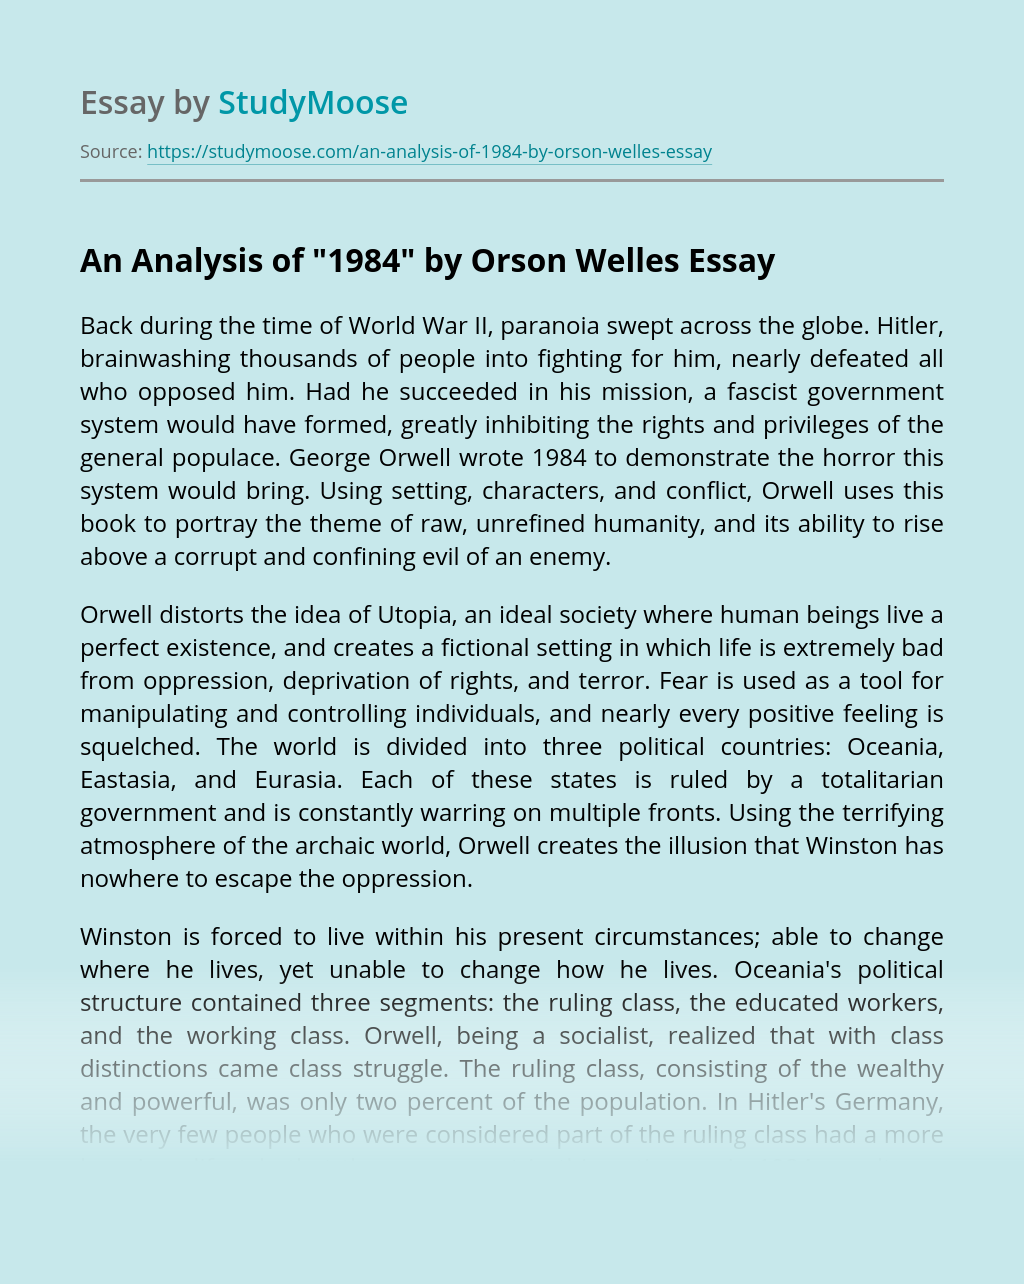 """An Analysis of """"1984"""" by Orson Welles"""